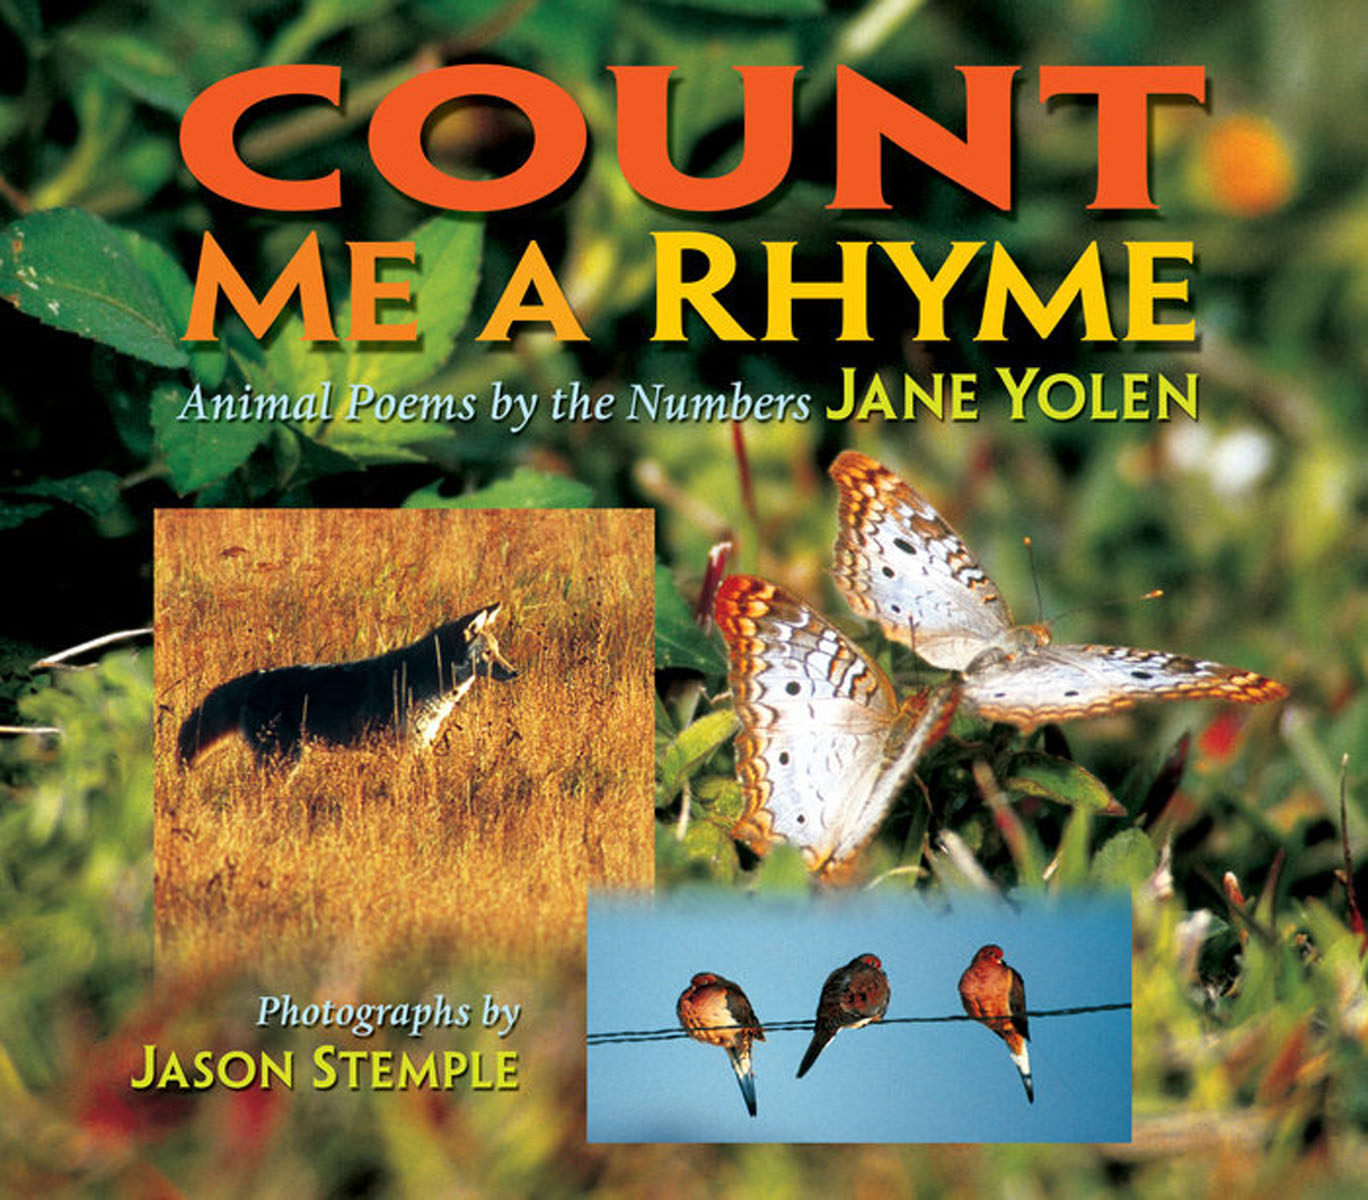 Count Me a Rhyme: Animal Poems by the Numbers animal poems